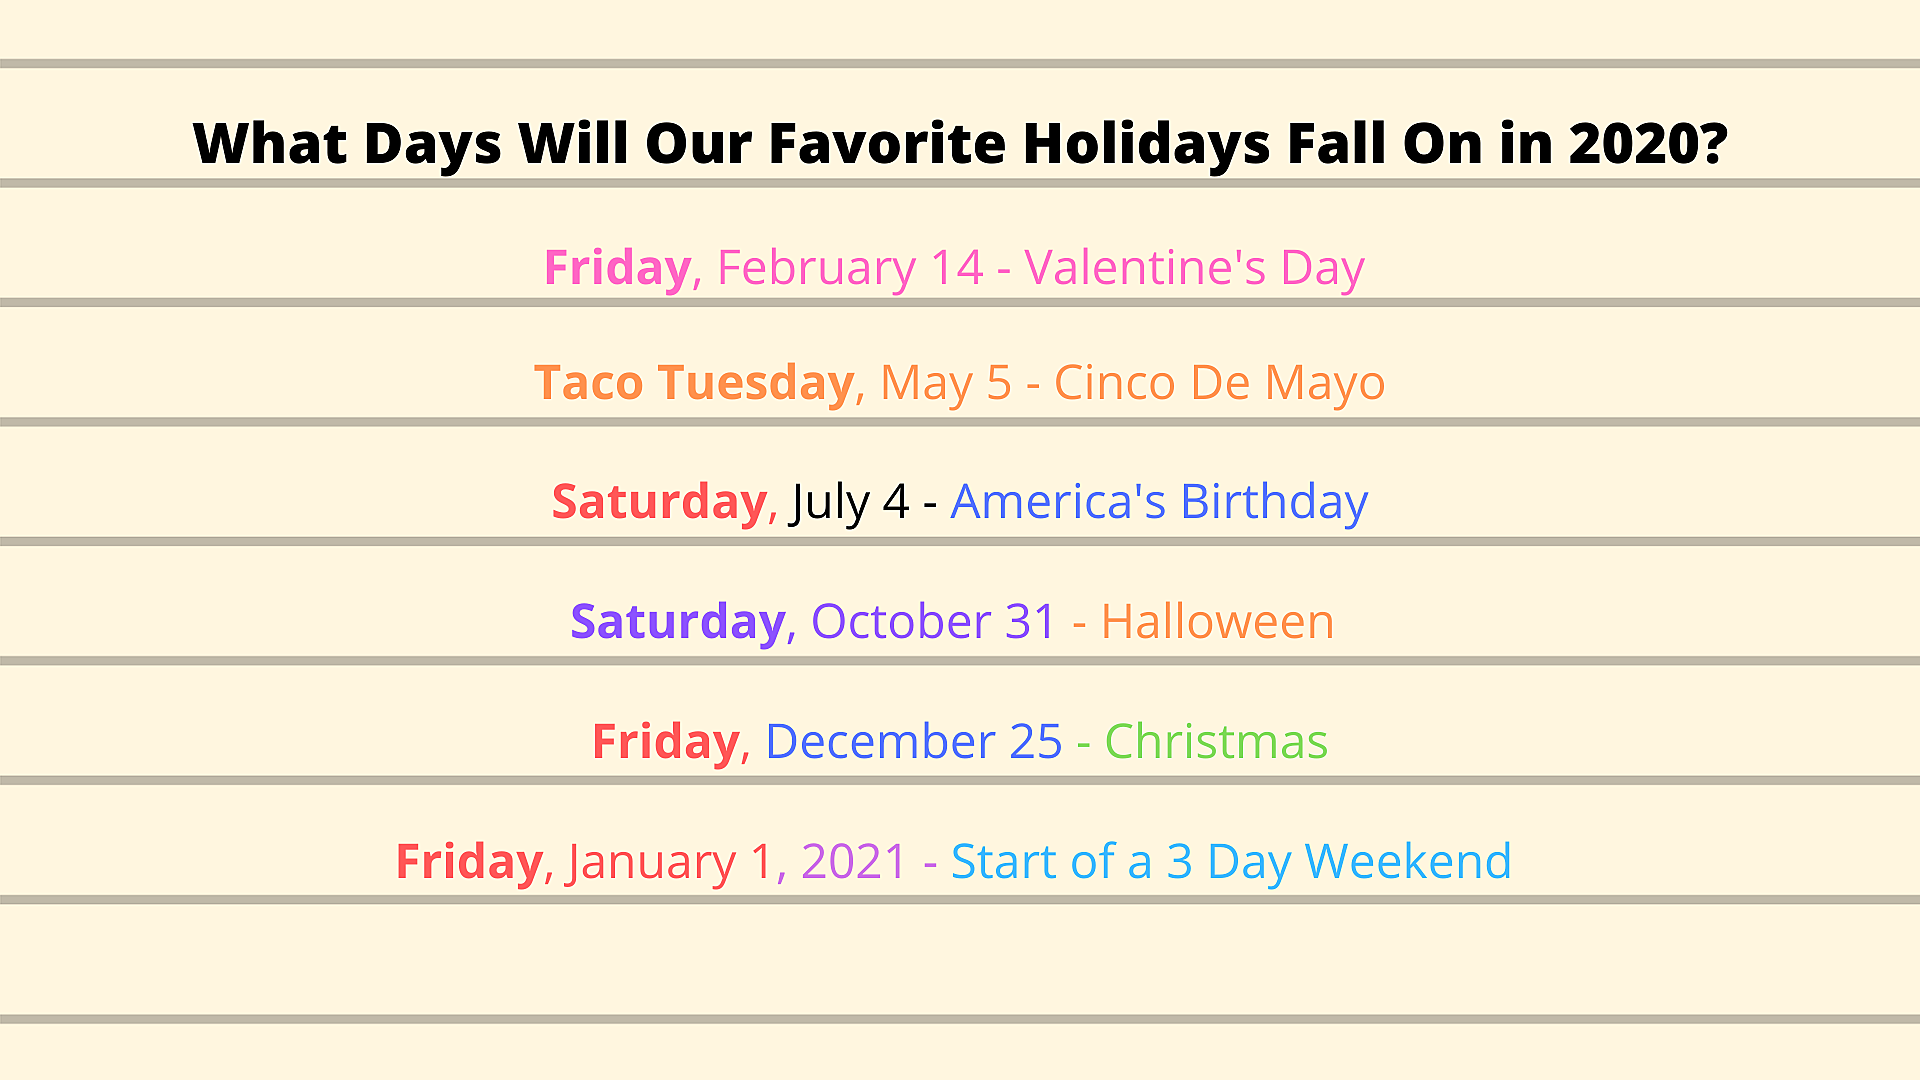 Halloween 2020 The Holidays Some 2020 Holidays will be on the Perfect Days